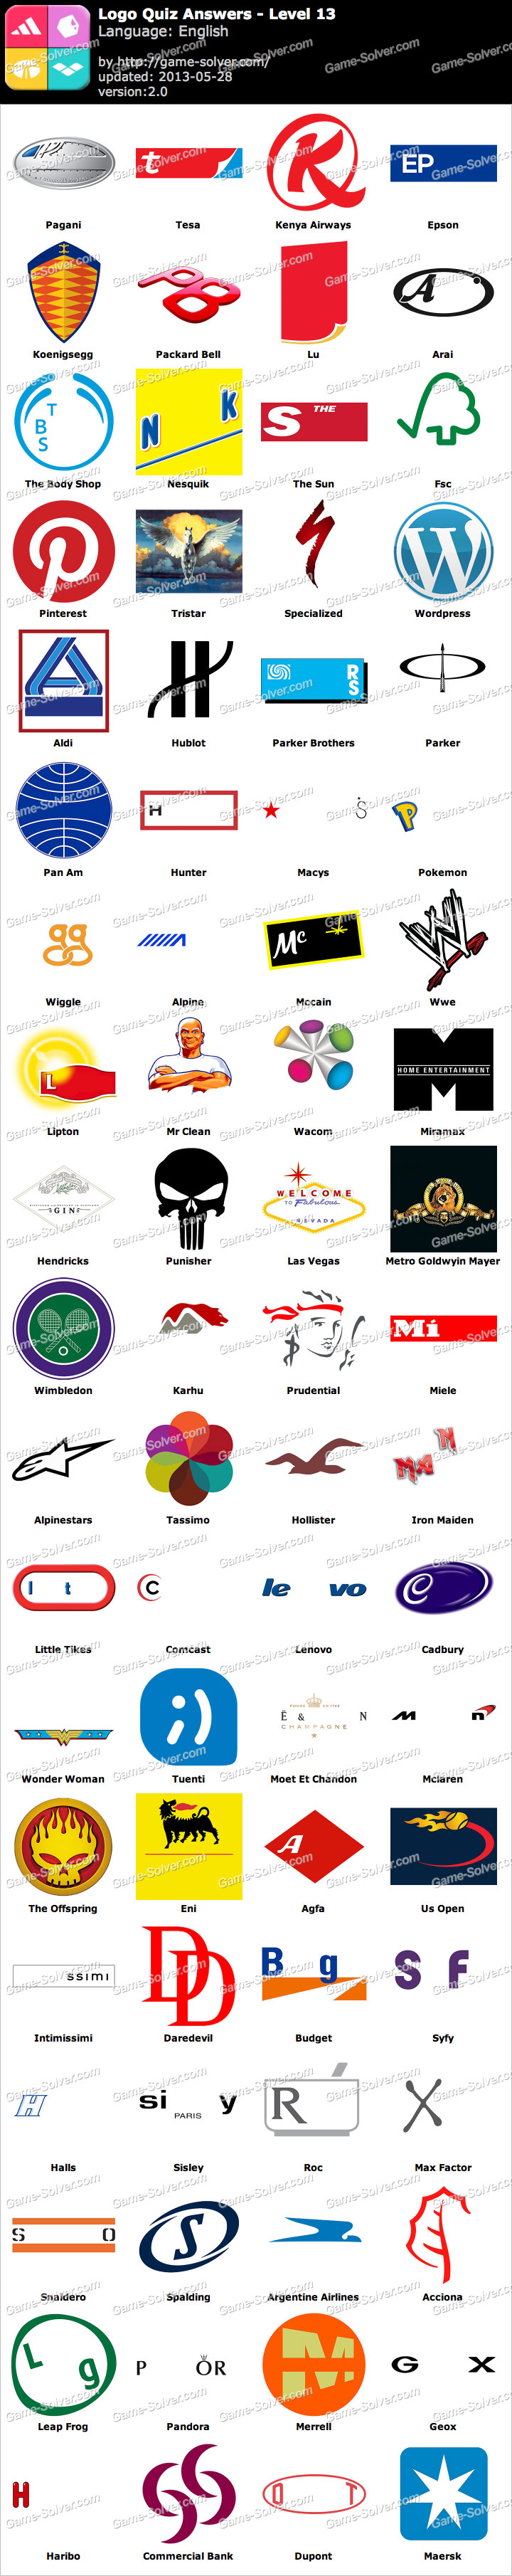 Logo Quiz Level 13 Word List